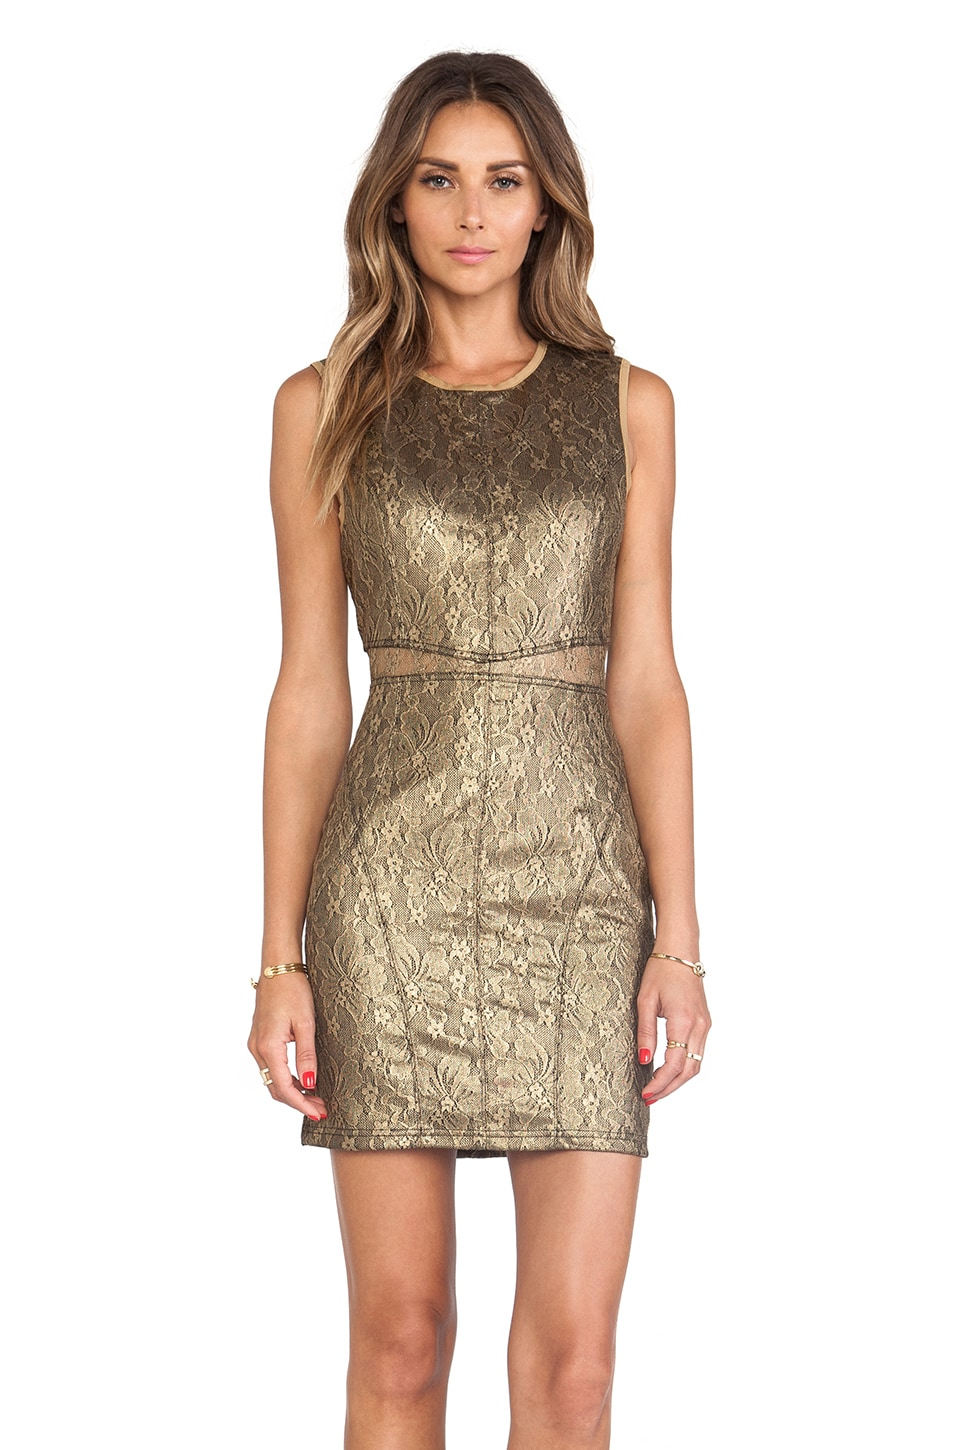 keepsake Stand By Me Dress in Gold Lurex